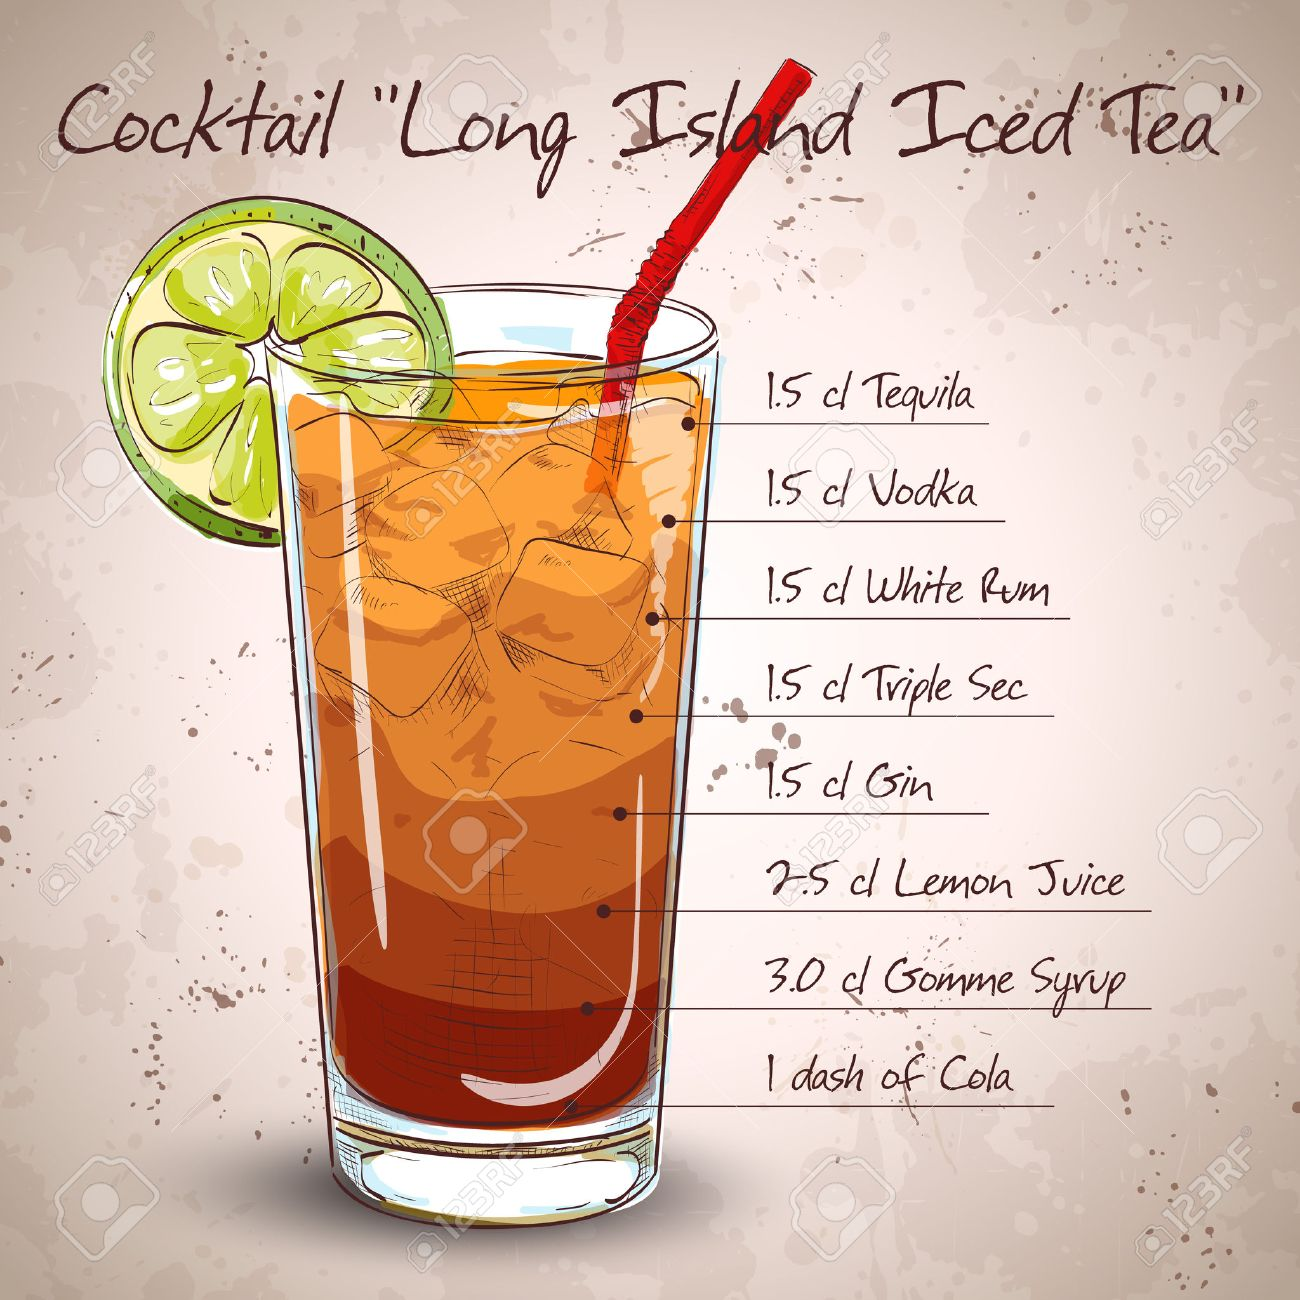 Cocktail Long Island Iced Tea Vodka, consisting of gin, rum Light, Silver tequila, orange liqueur, lemon, syrup, cola, ice cubes - 48647852